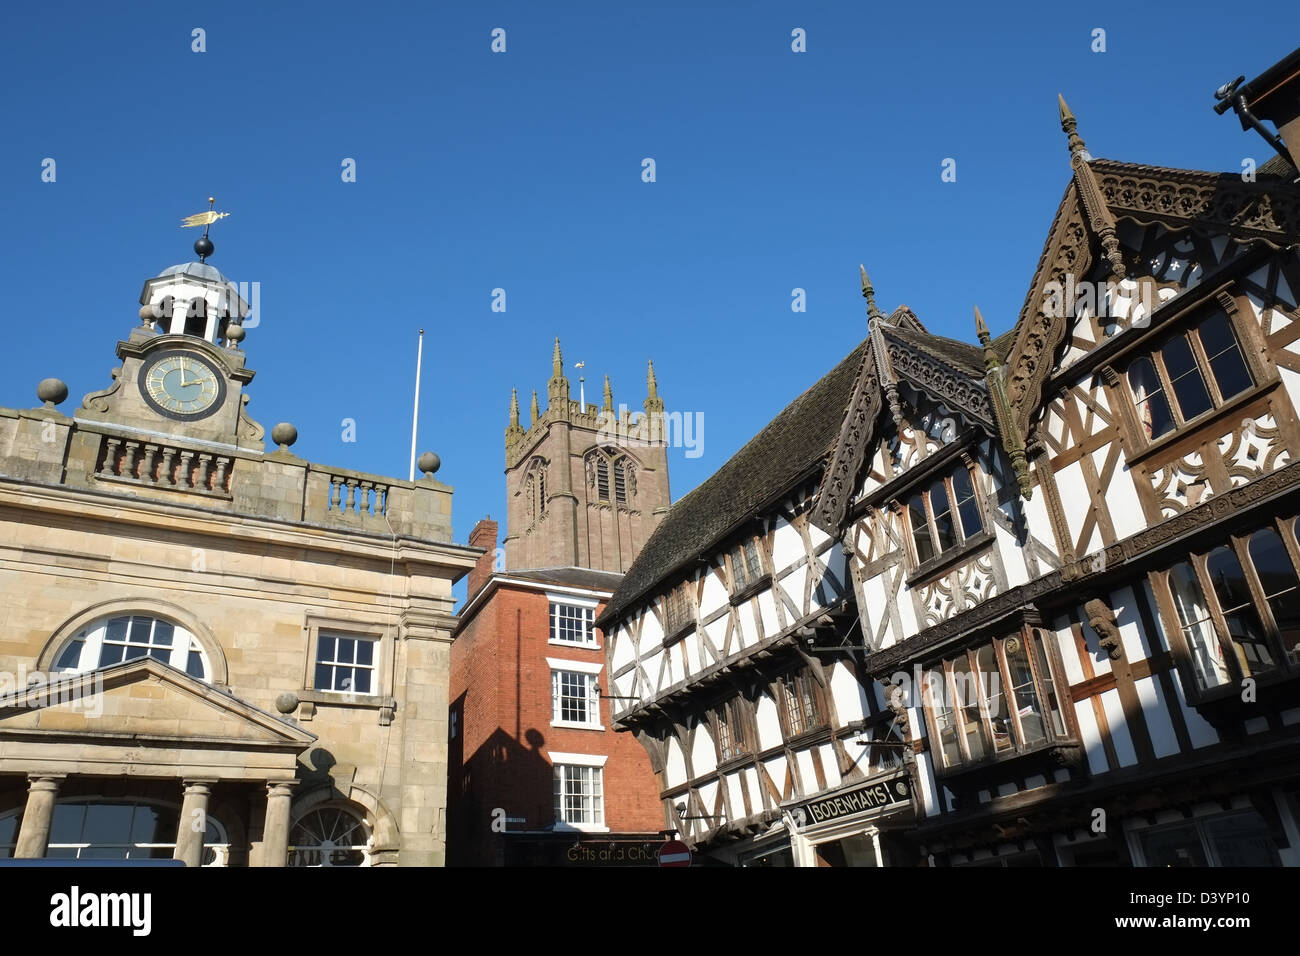 Cathedral of the Marches - St Laurence - Buttercross an historic buildings on Broad Street, Ludlow, Shropshire, - Stock Image